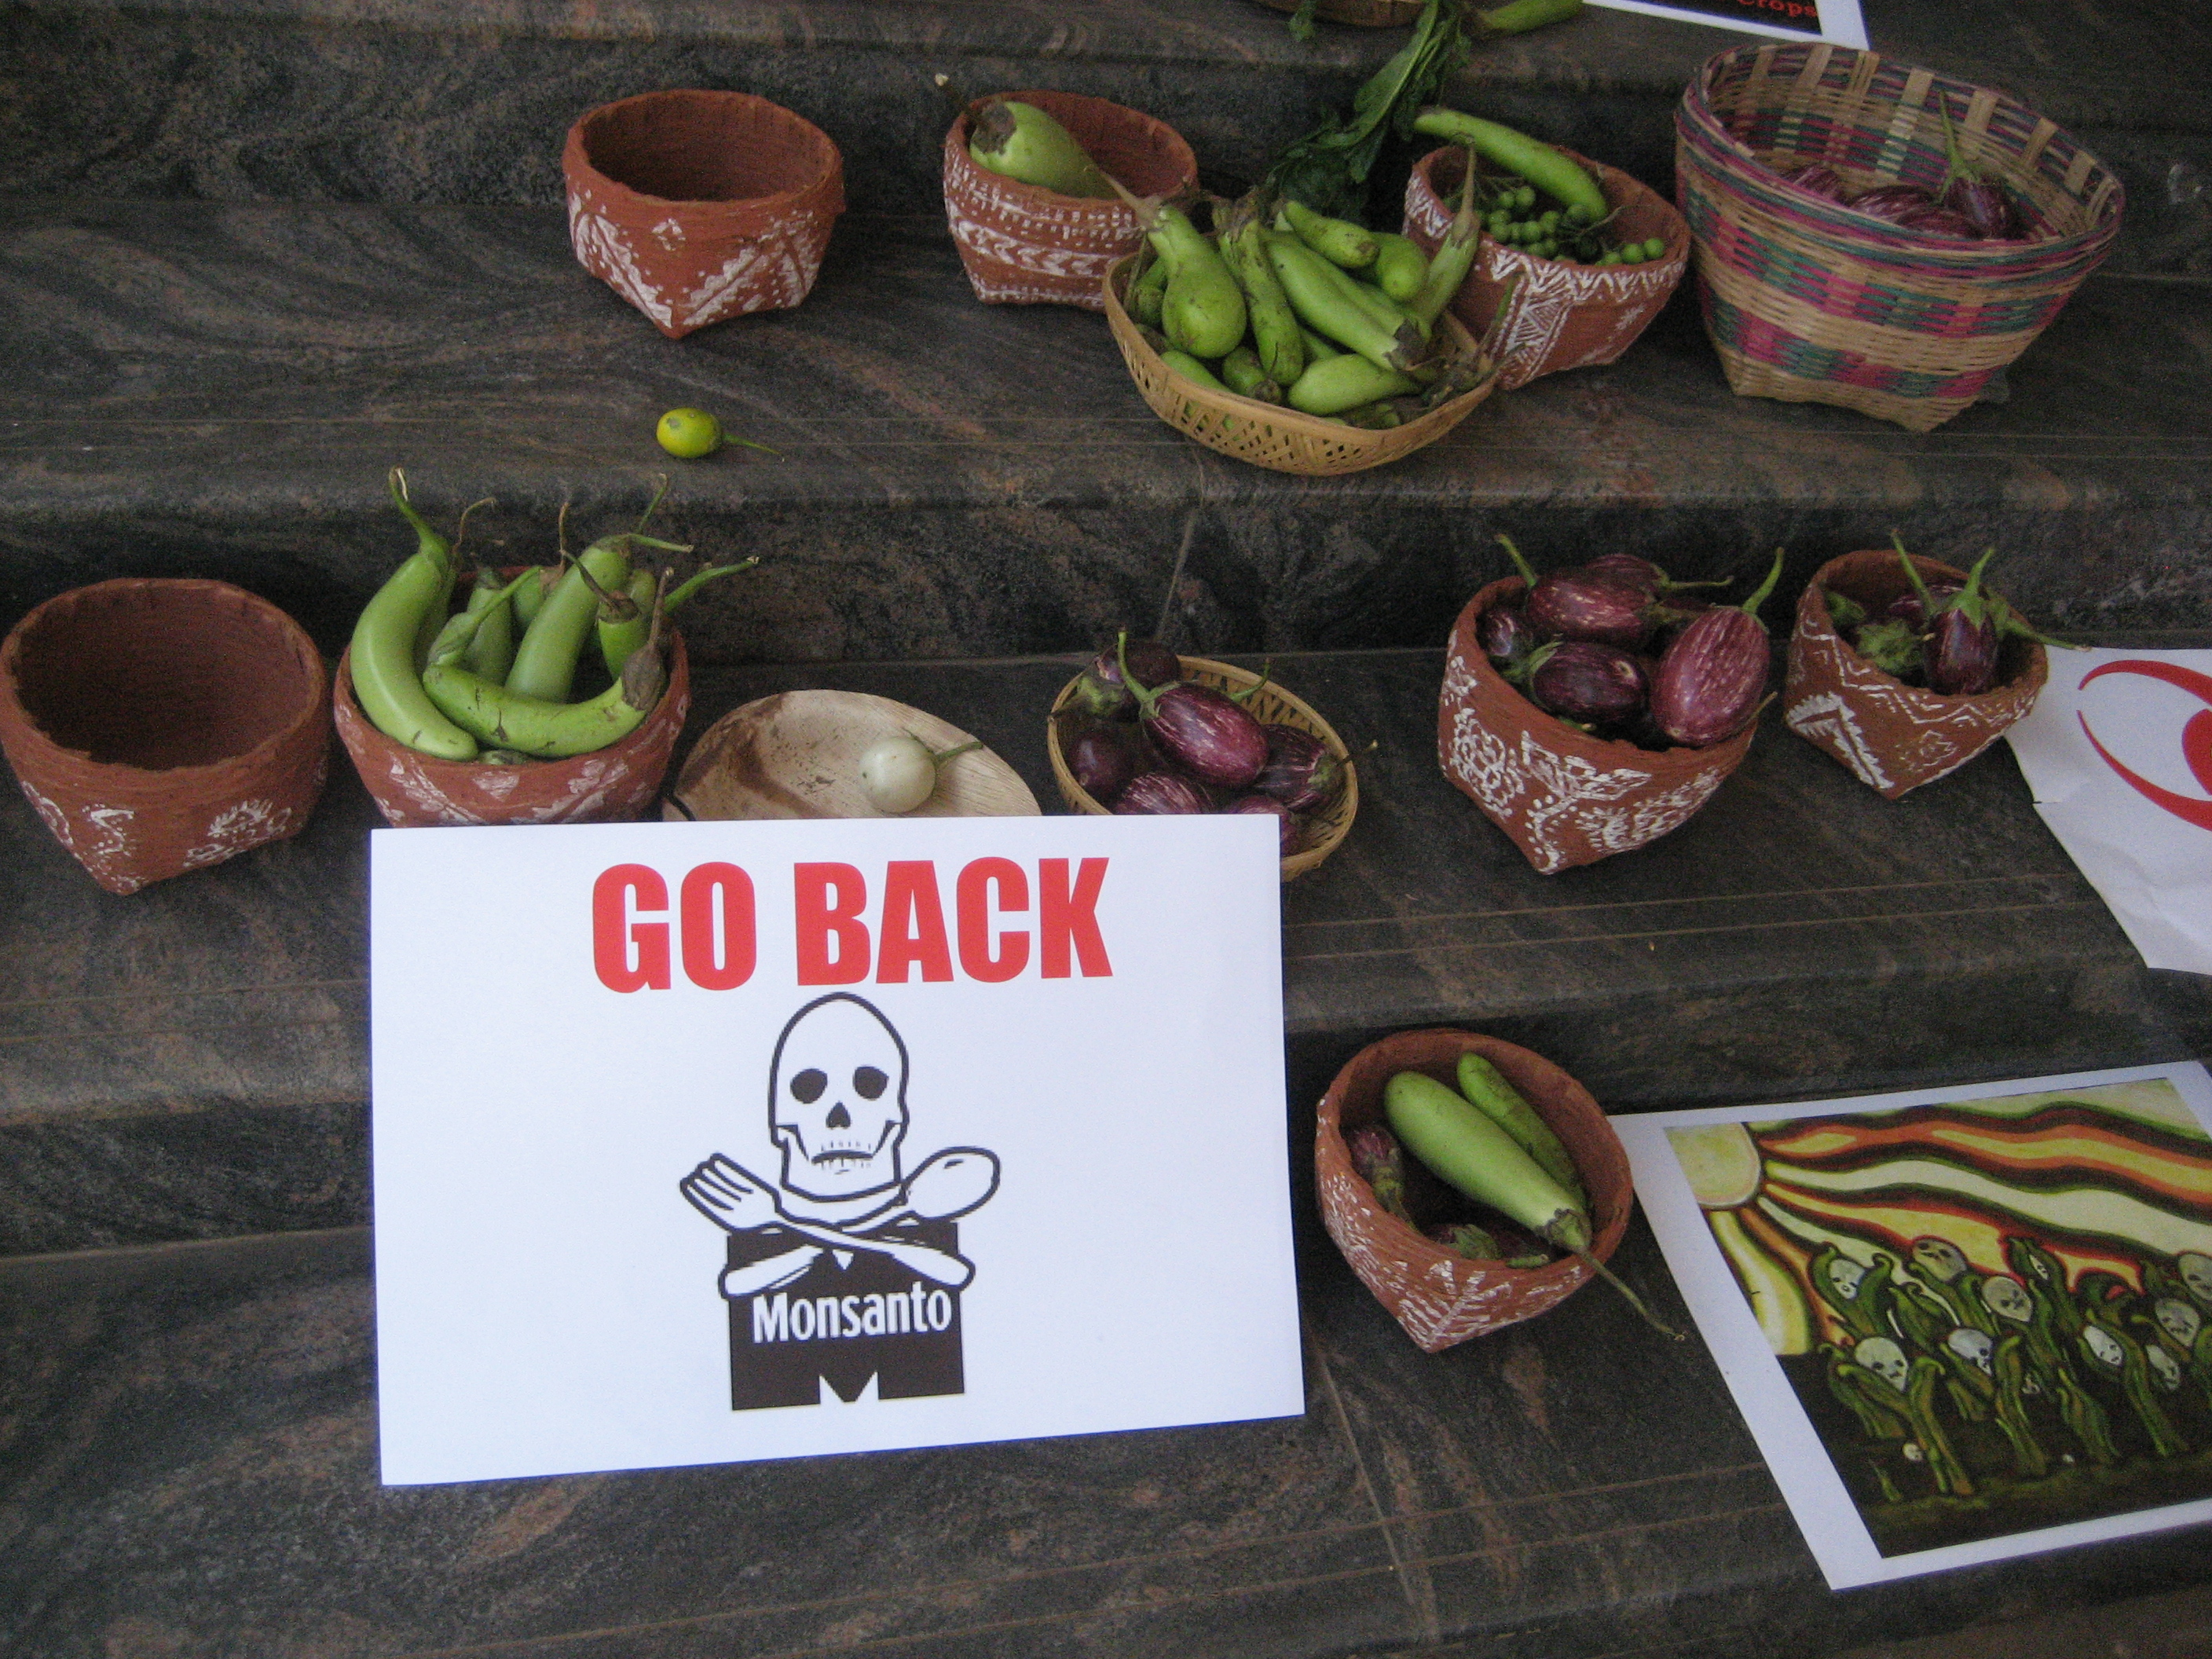 Baskets of different varieties of Brinjal put out by protesters during the listening tour of India's environment minister relating to the introduction of BT Brinjal to Bangladesh. Photo: Infoeco via Wikimedia Commons (CC BY-SA 3.0).